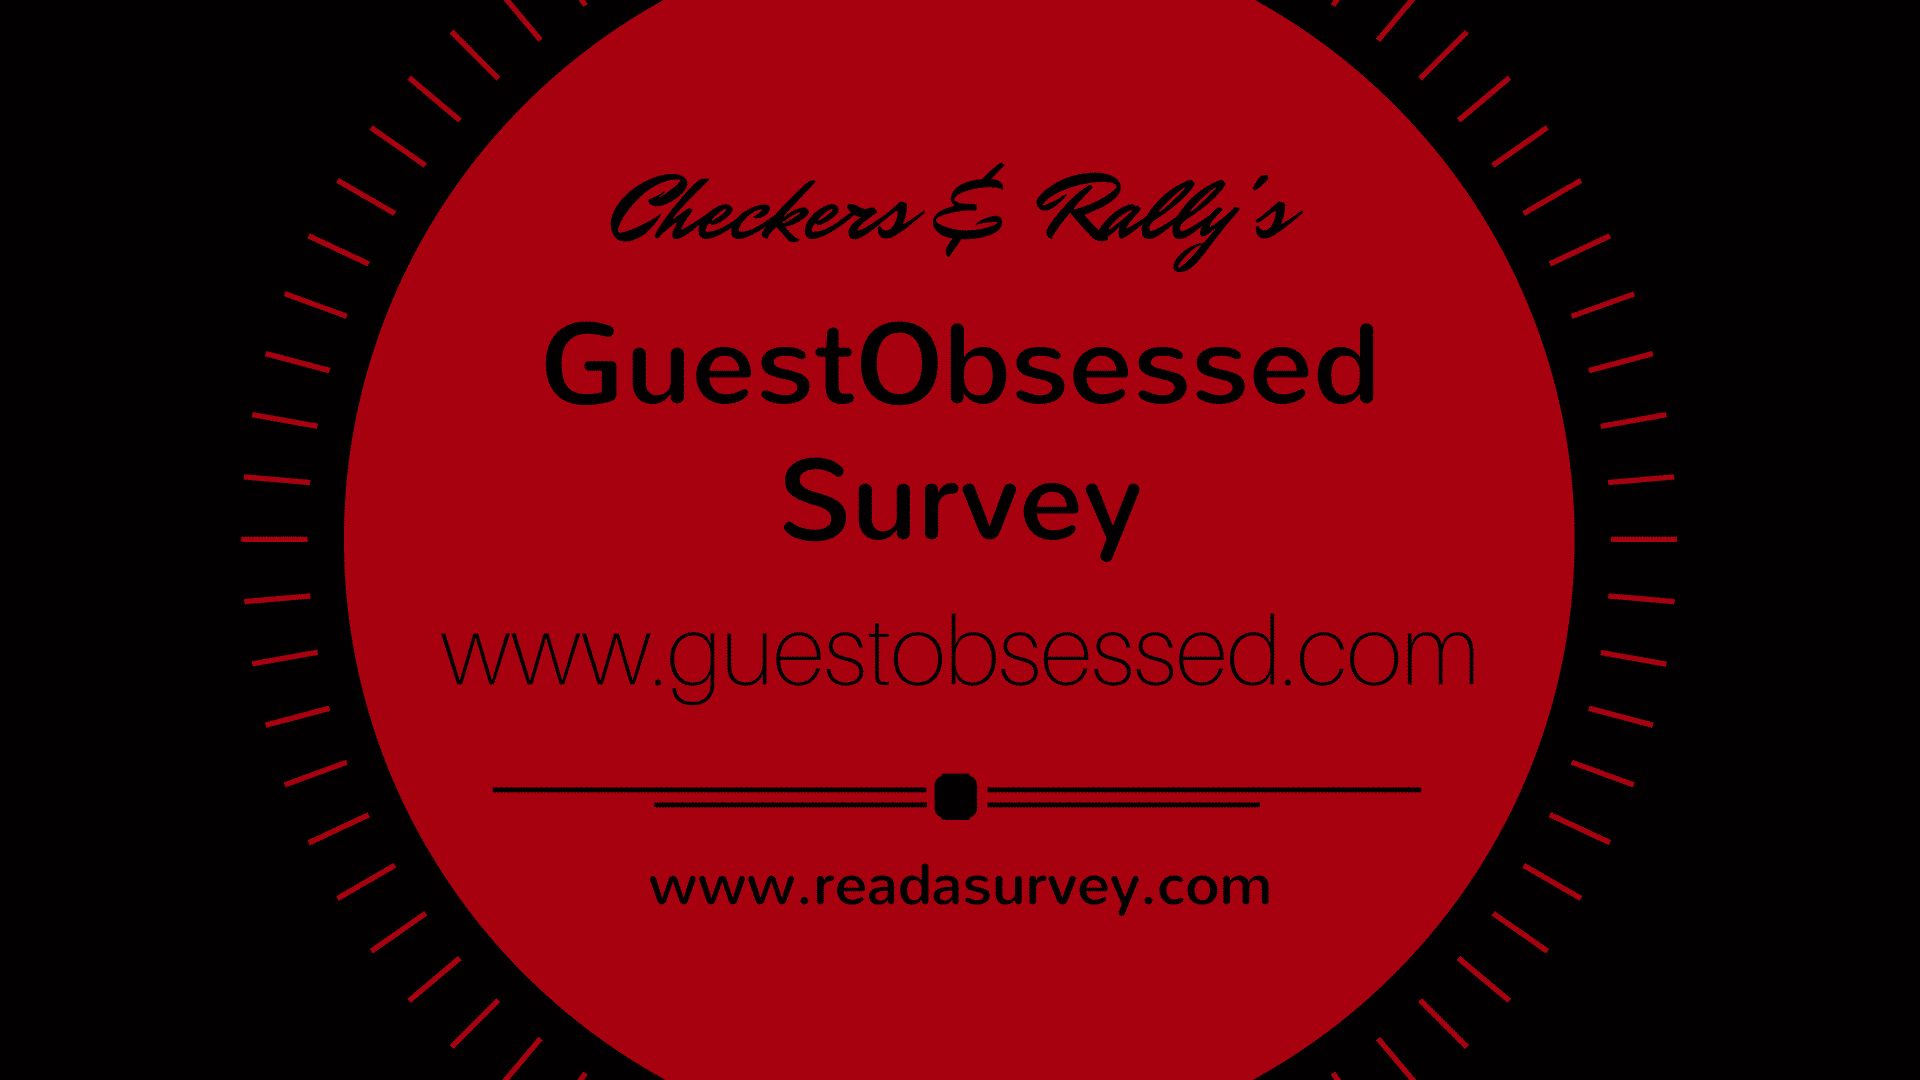 checkers and rallys guestobsessed survey